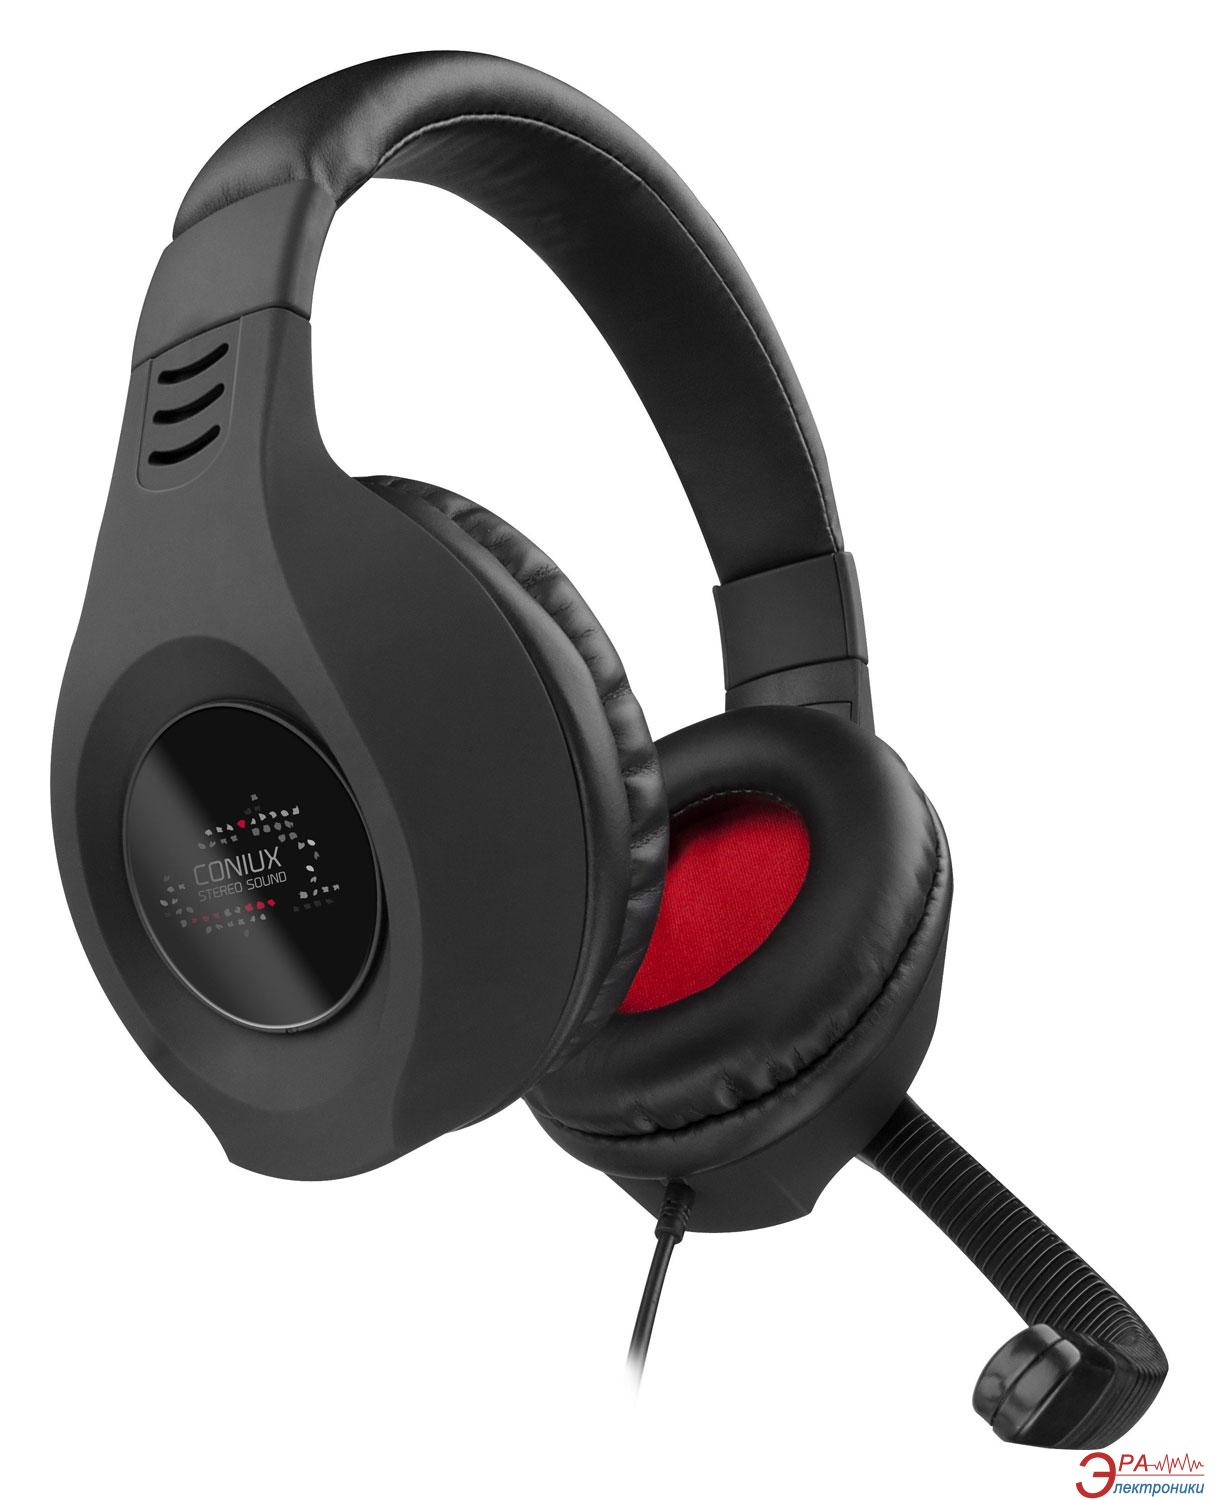 Гарнитура Speed Link Coniux Stereo Headset PS4 Black (SL-4533-BK)